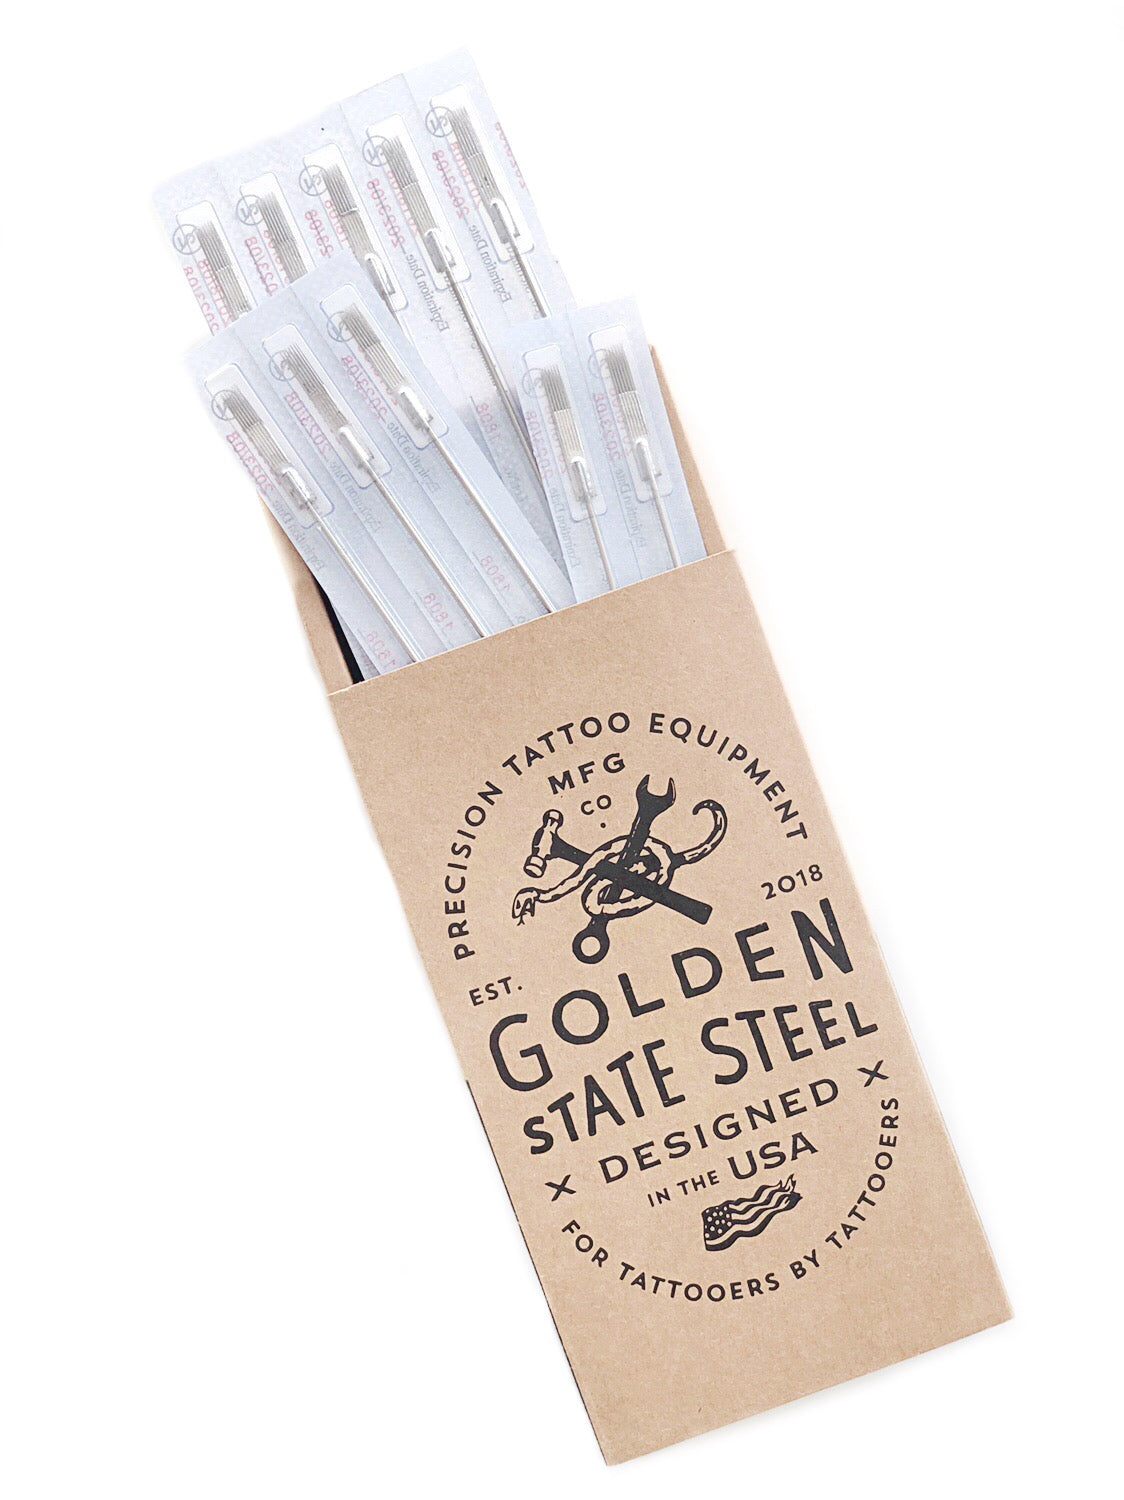 Golden State Steel Needles